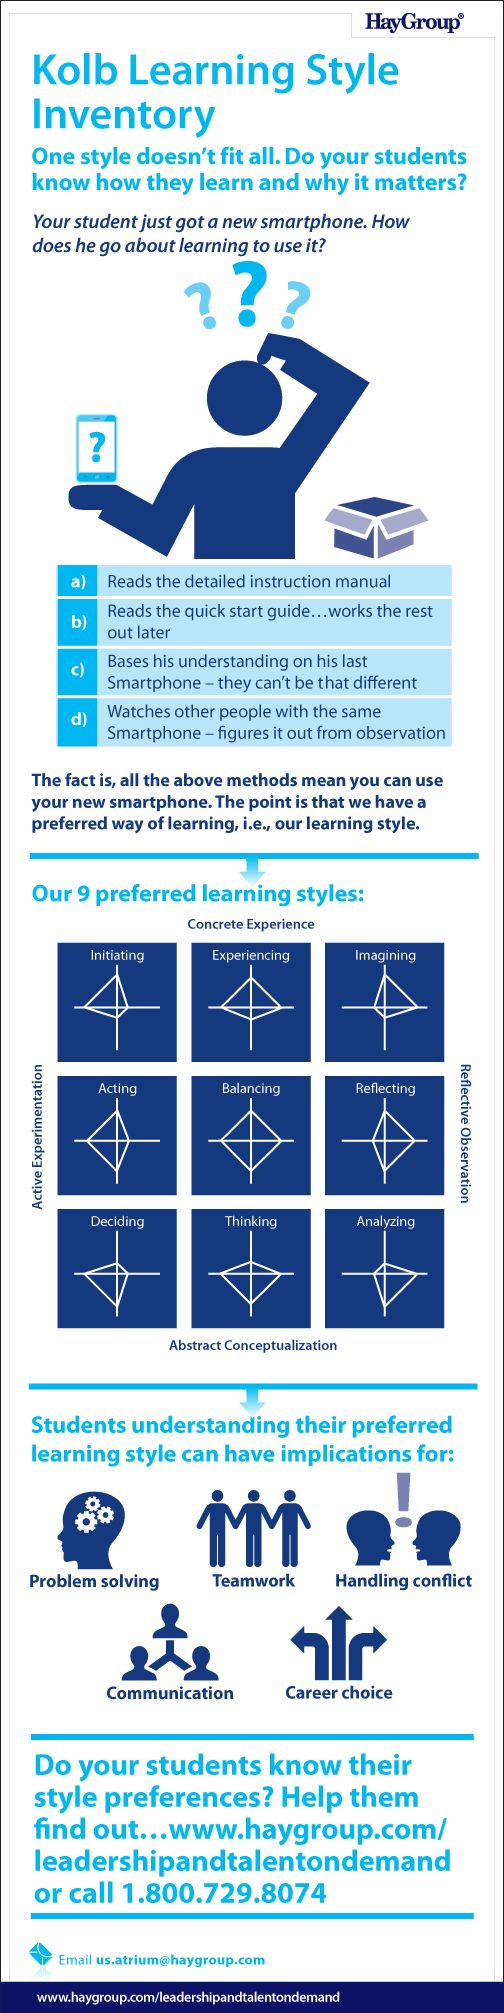 best ideas about learning style inventory one style doesn t fit all kolb learning style inventory